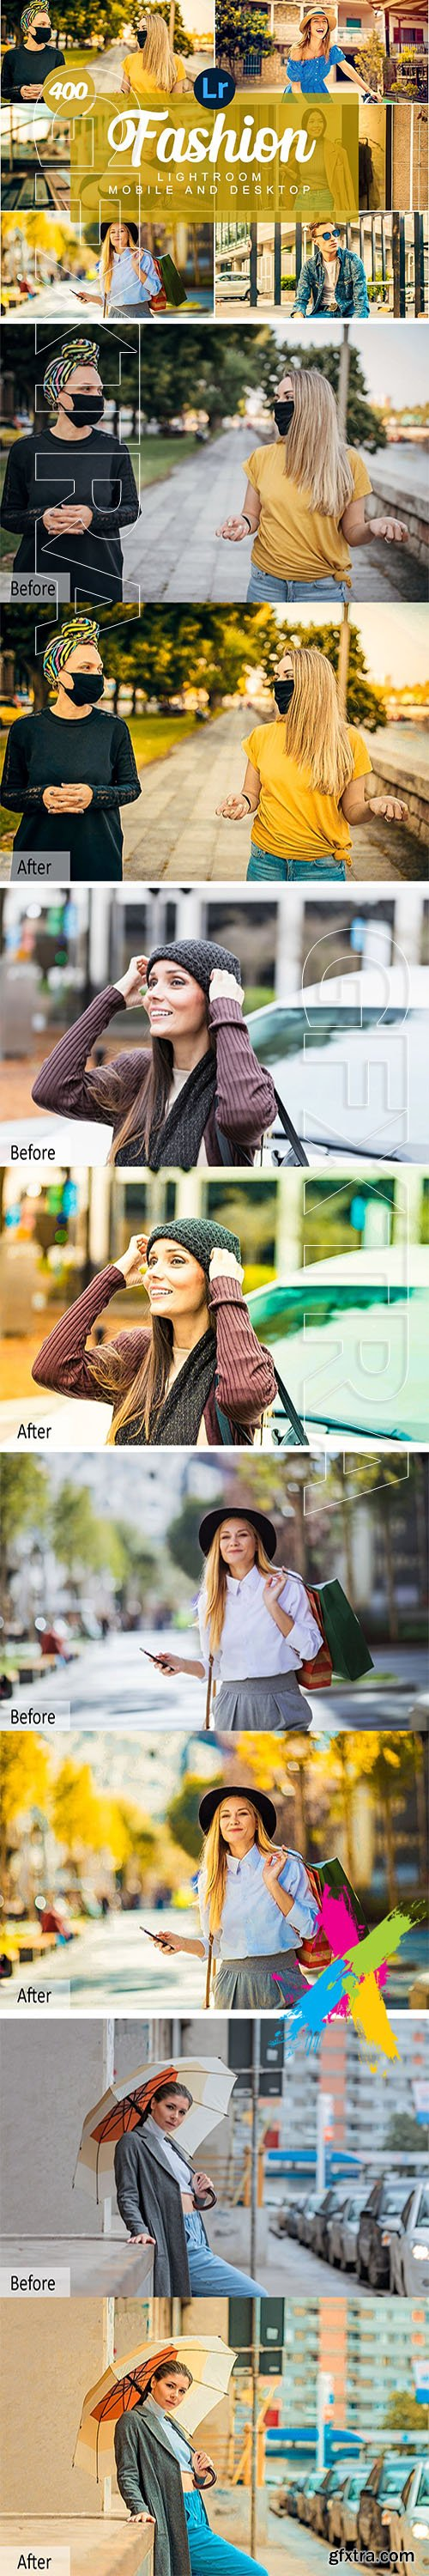 CreativeMarket - Fashion Mobile and Desktop PRESETS 5734596